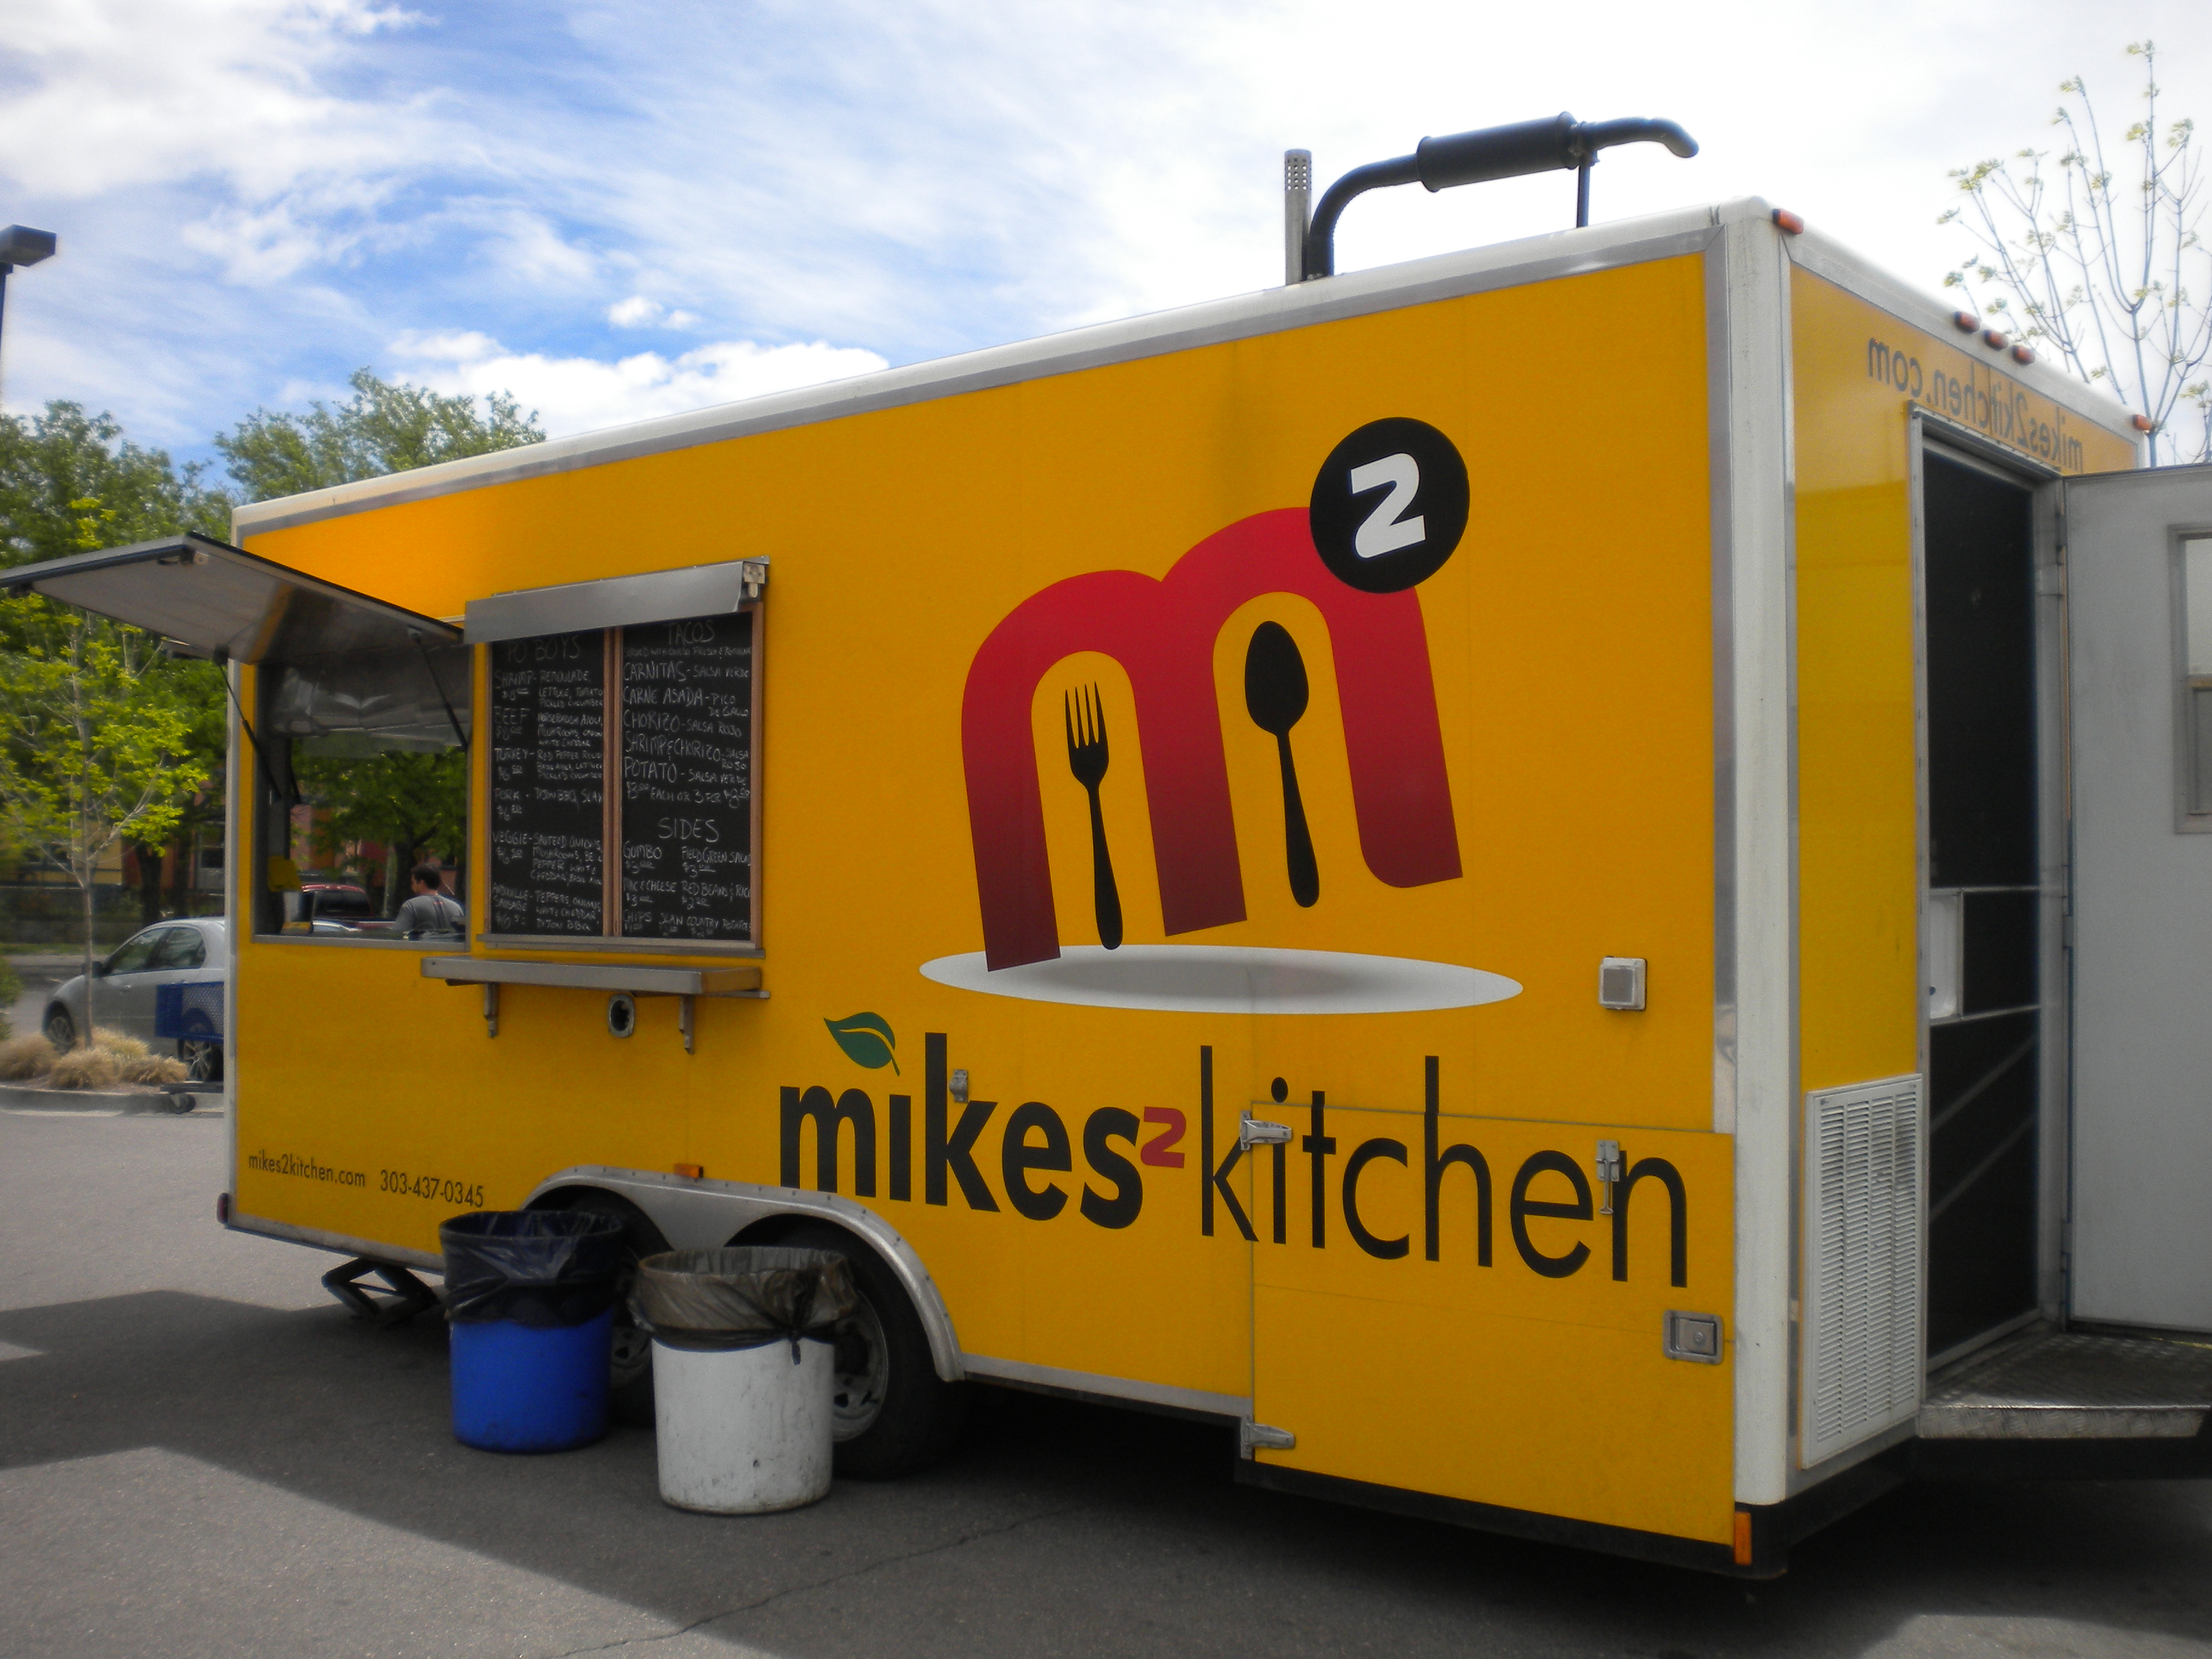 Mikes2Kitchen's eye catching yellow trailer.